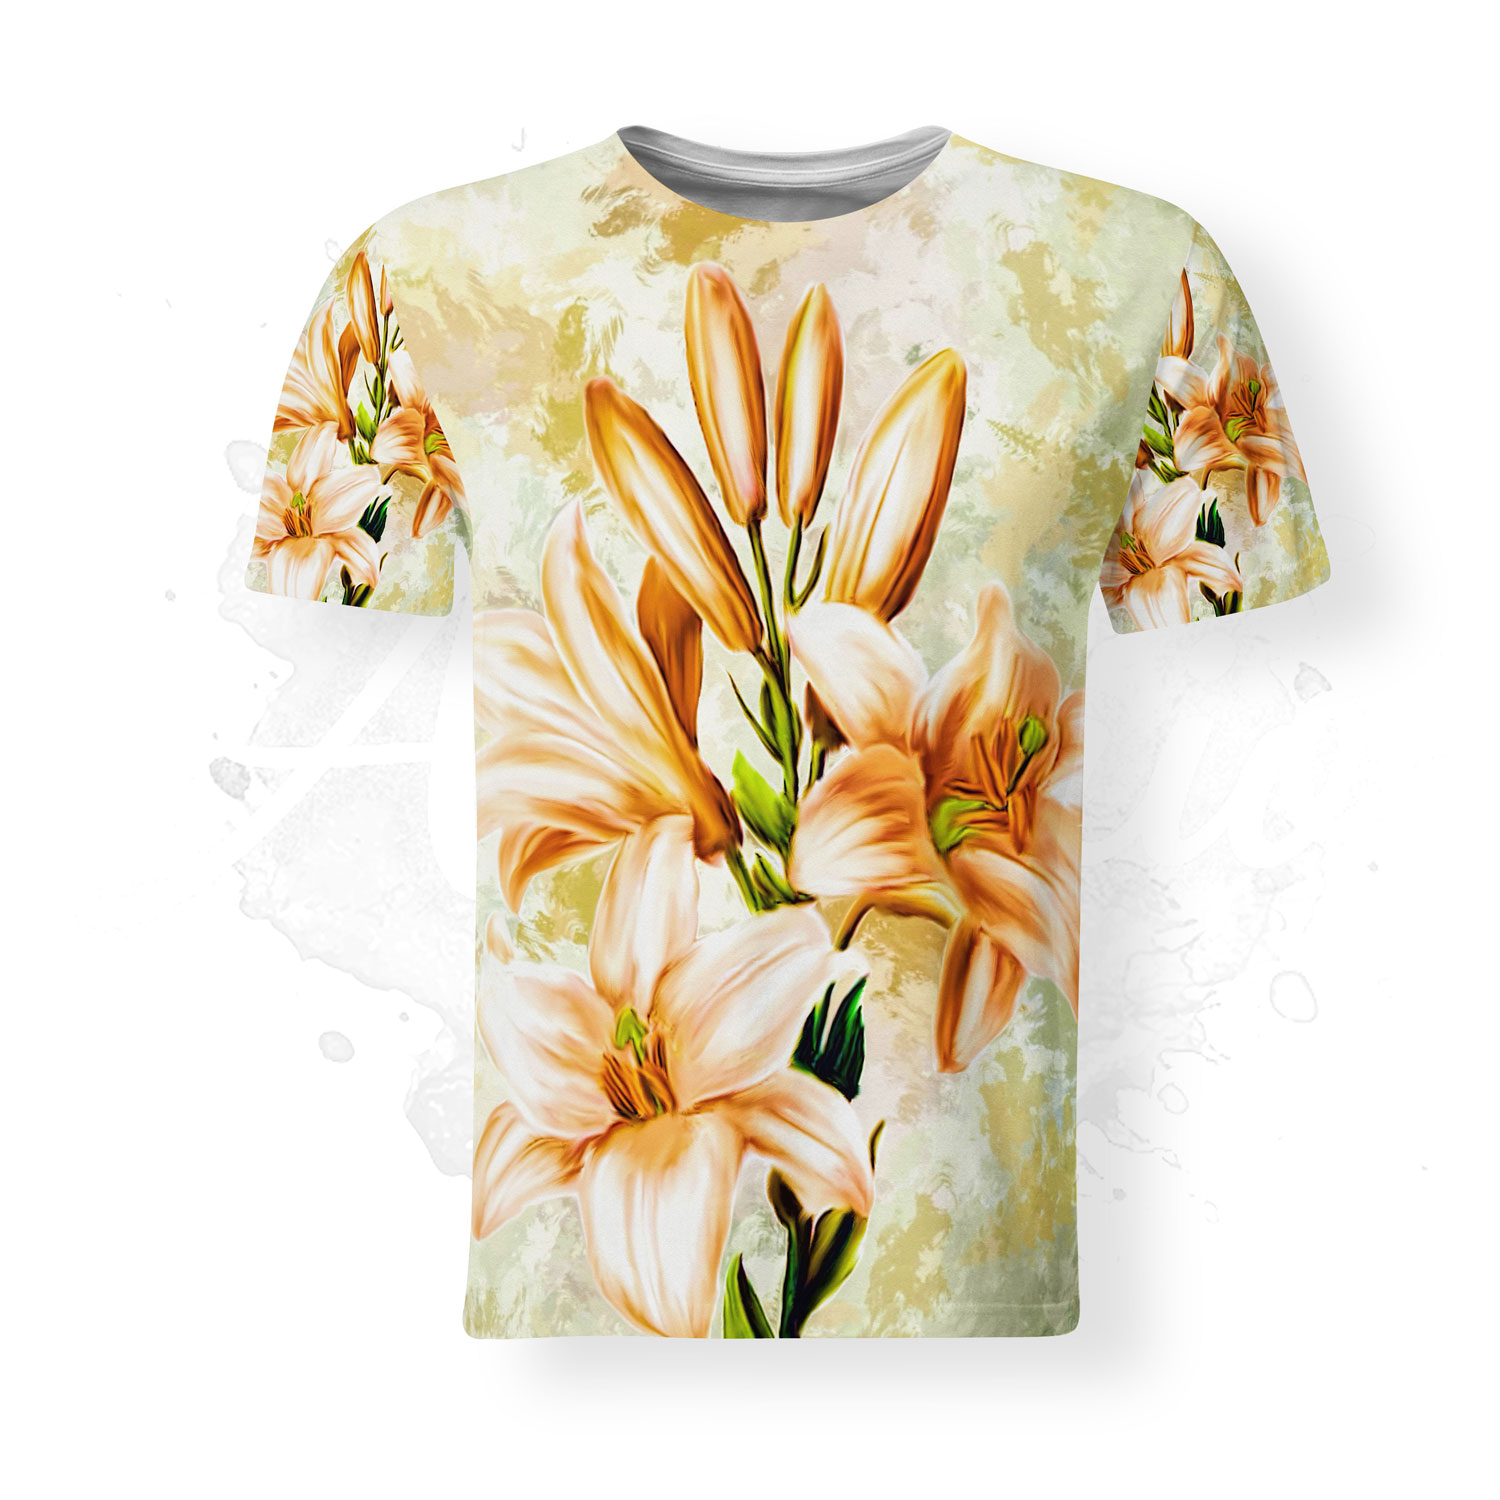 T-Shirt for men, Almirio, Lily, white, orange, flower,